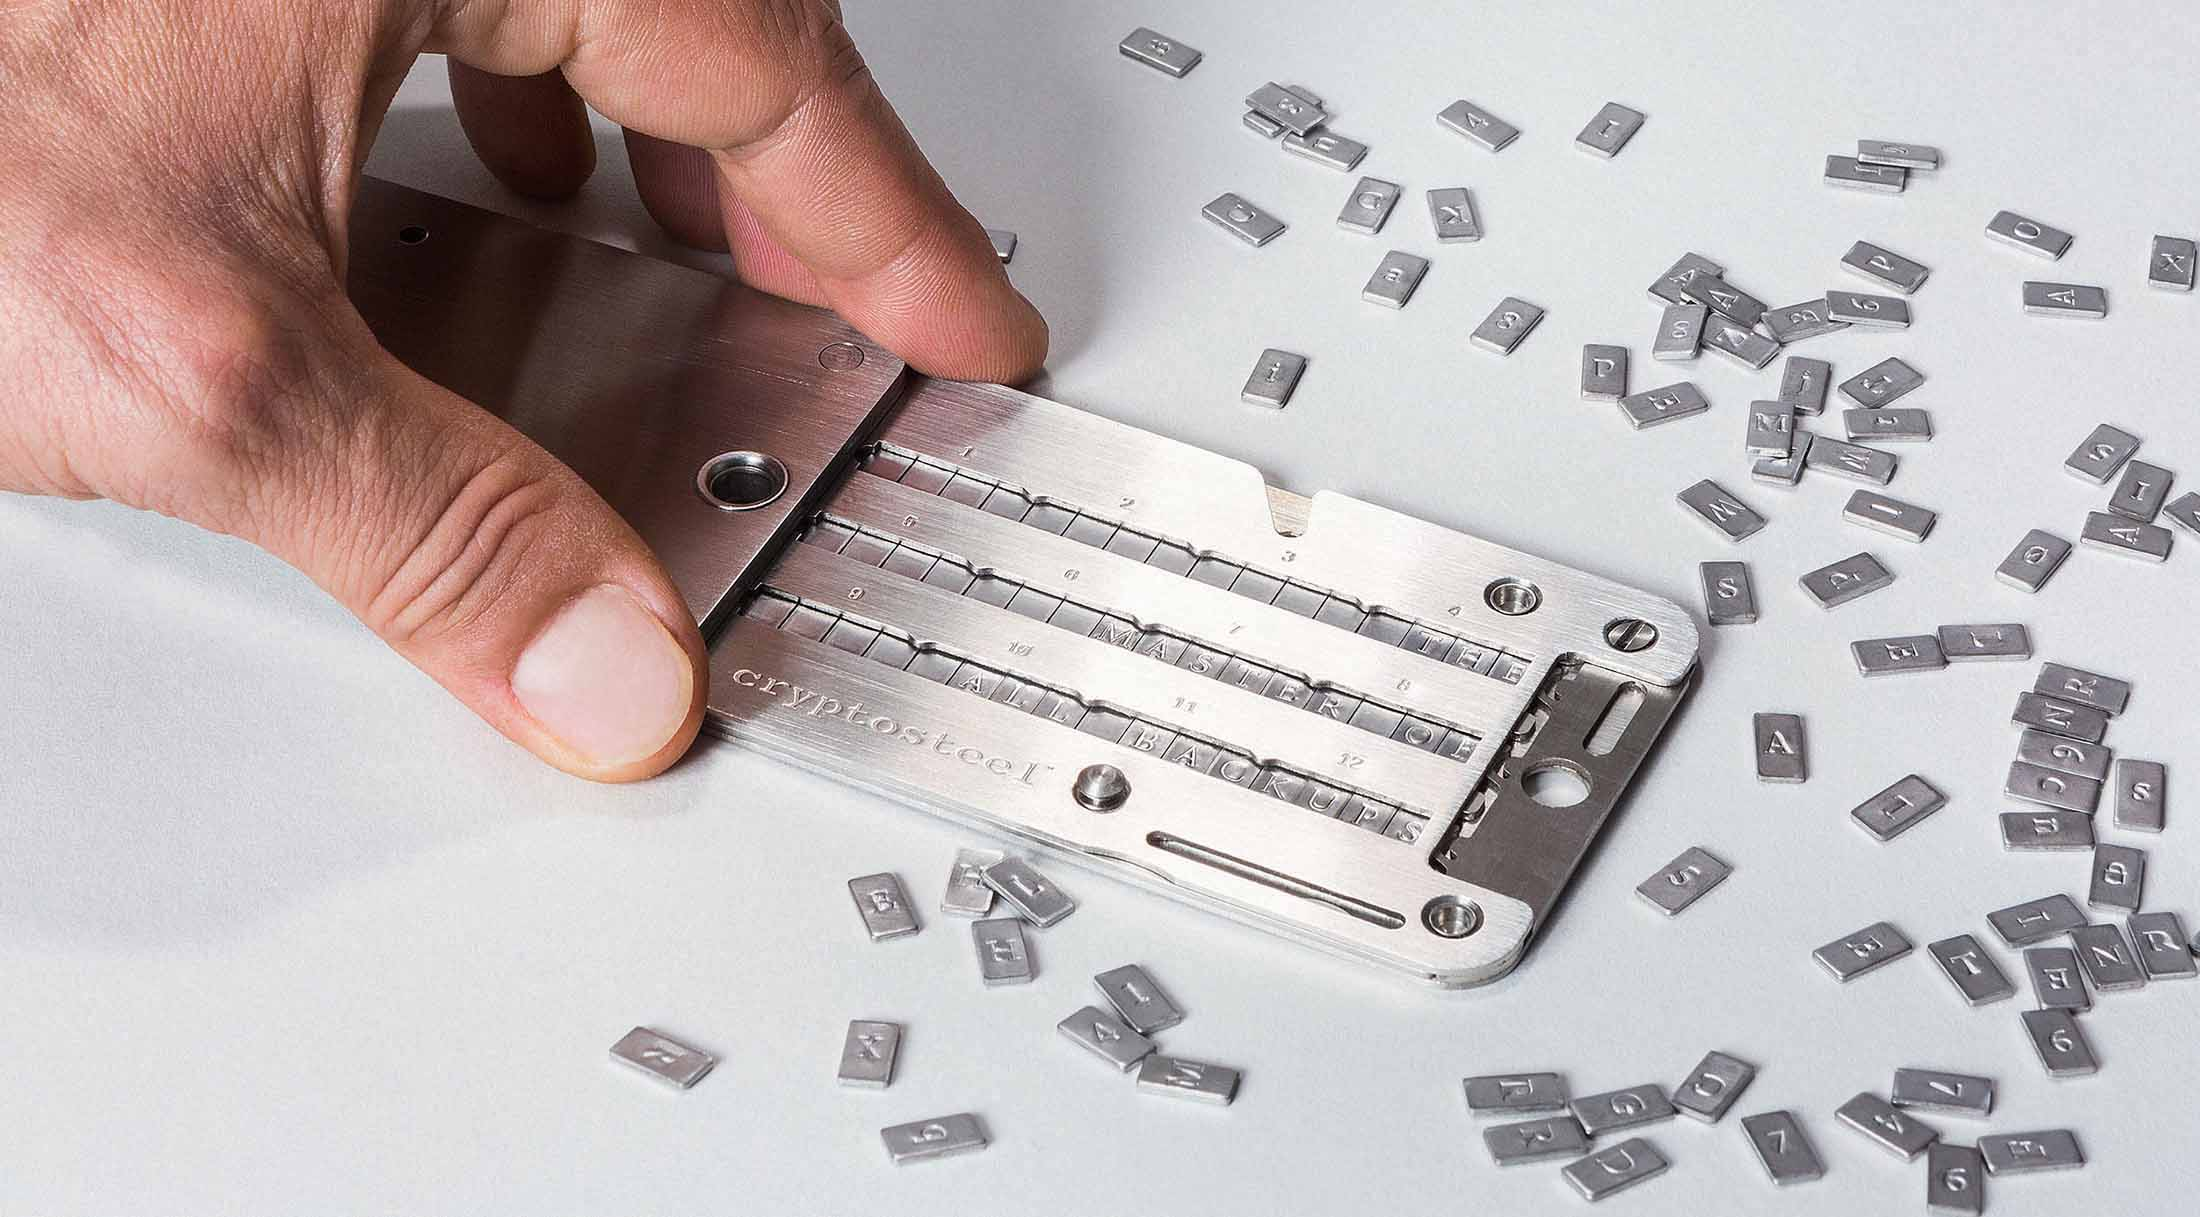 Cryptosteel open with hand large